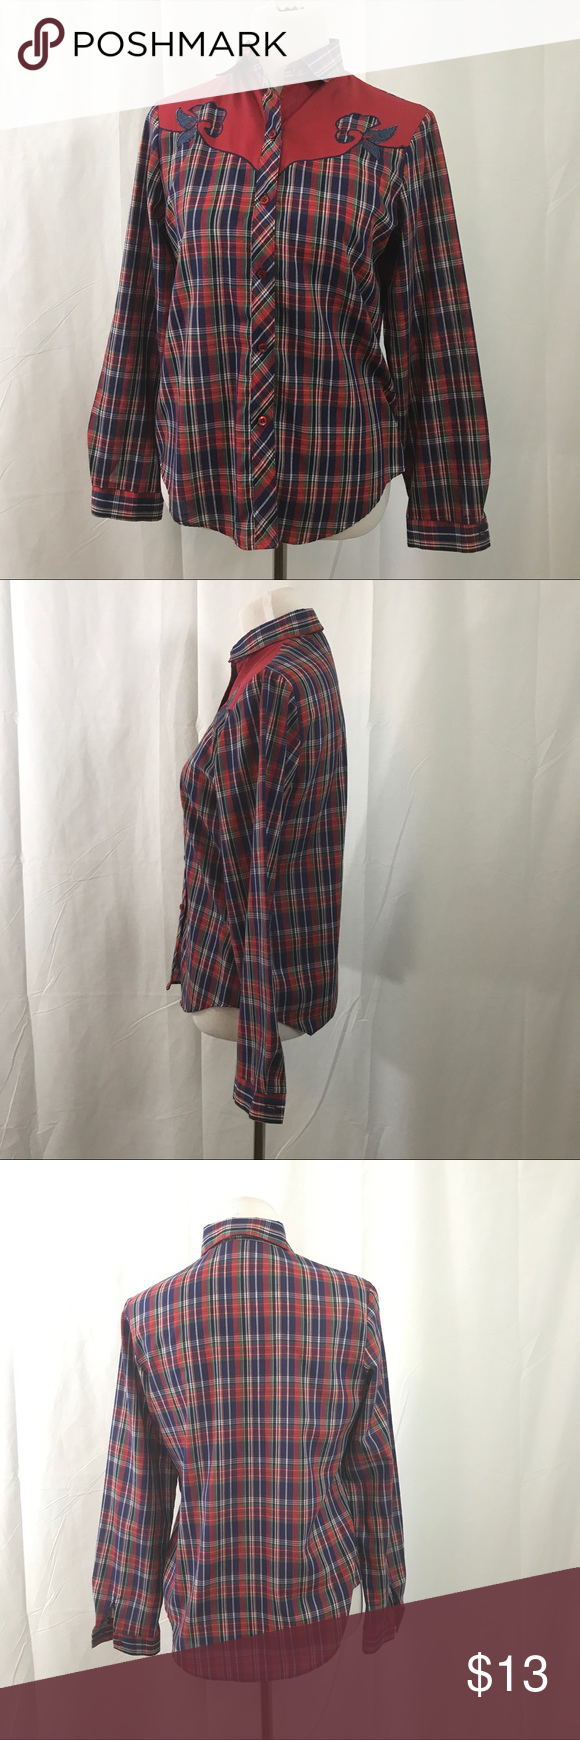 Vintage Red and Blue Western Style Button Down S EUC  great 80s style western inspired shirt. So cute perfect with your jeans or jean shorts. Label Koret City Blues Bust 38 Length 27 ModCloth Tops Button Down Shirts